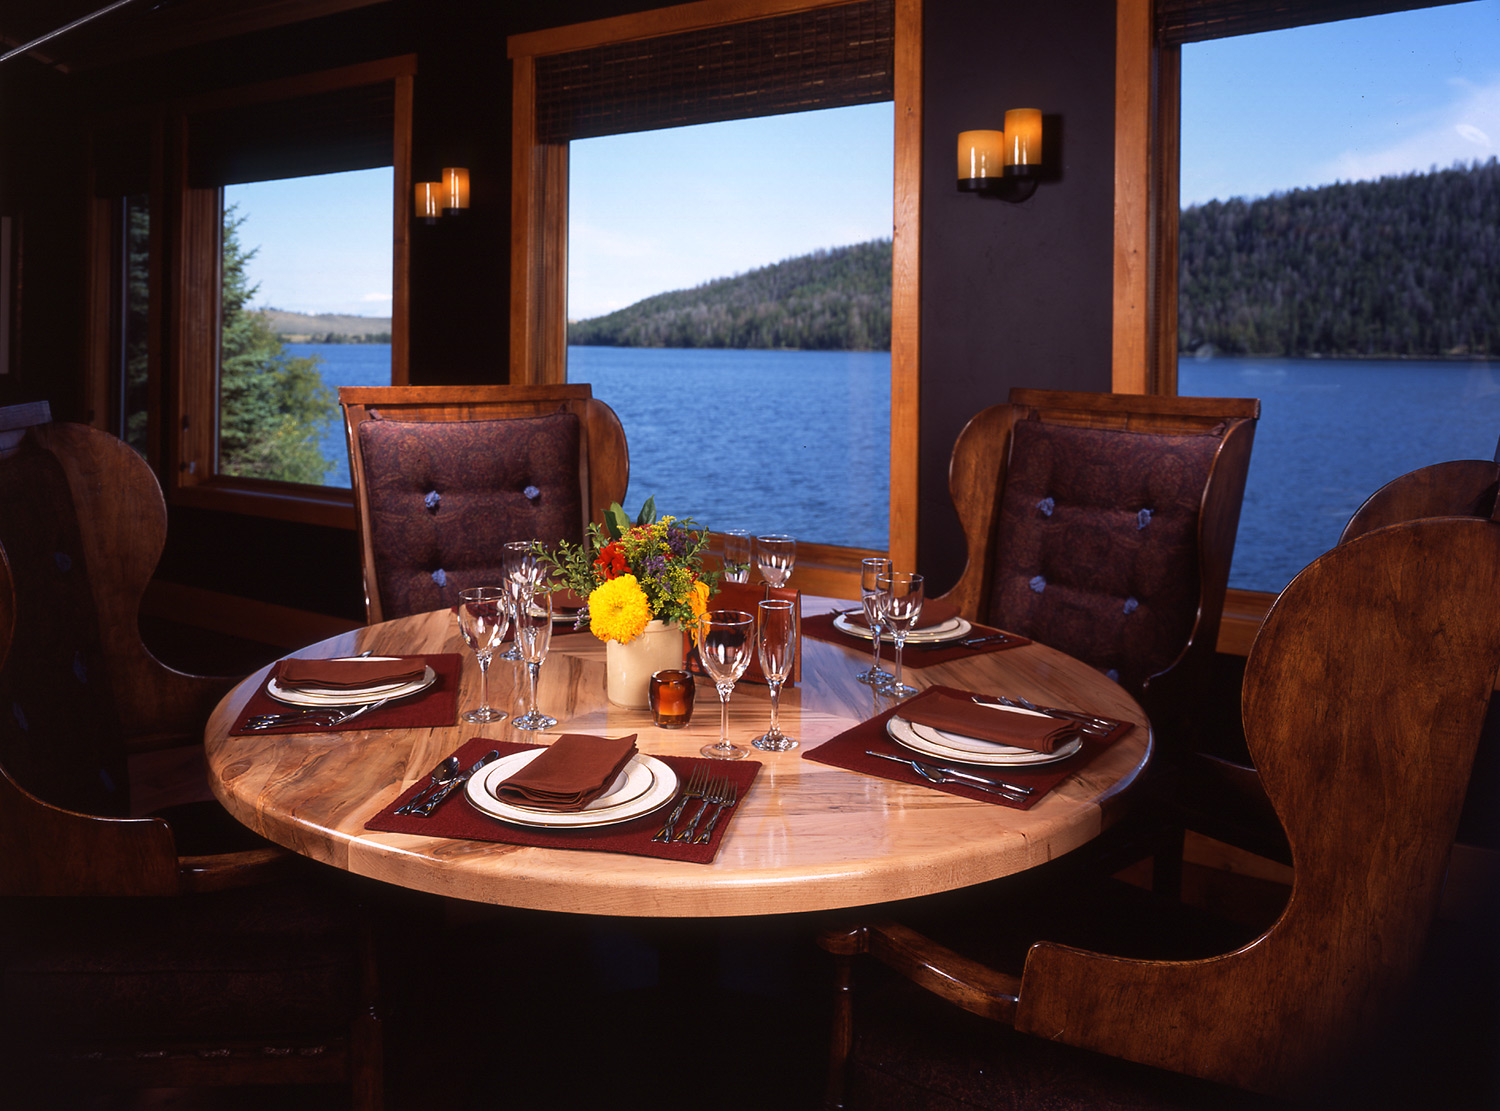 wyoming, wood, lake, lodge, leather, seating, dining room, rich textures, warm tone, rustic, western, inviting, cozy